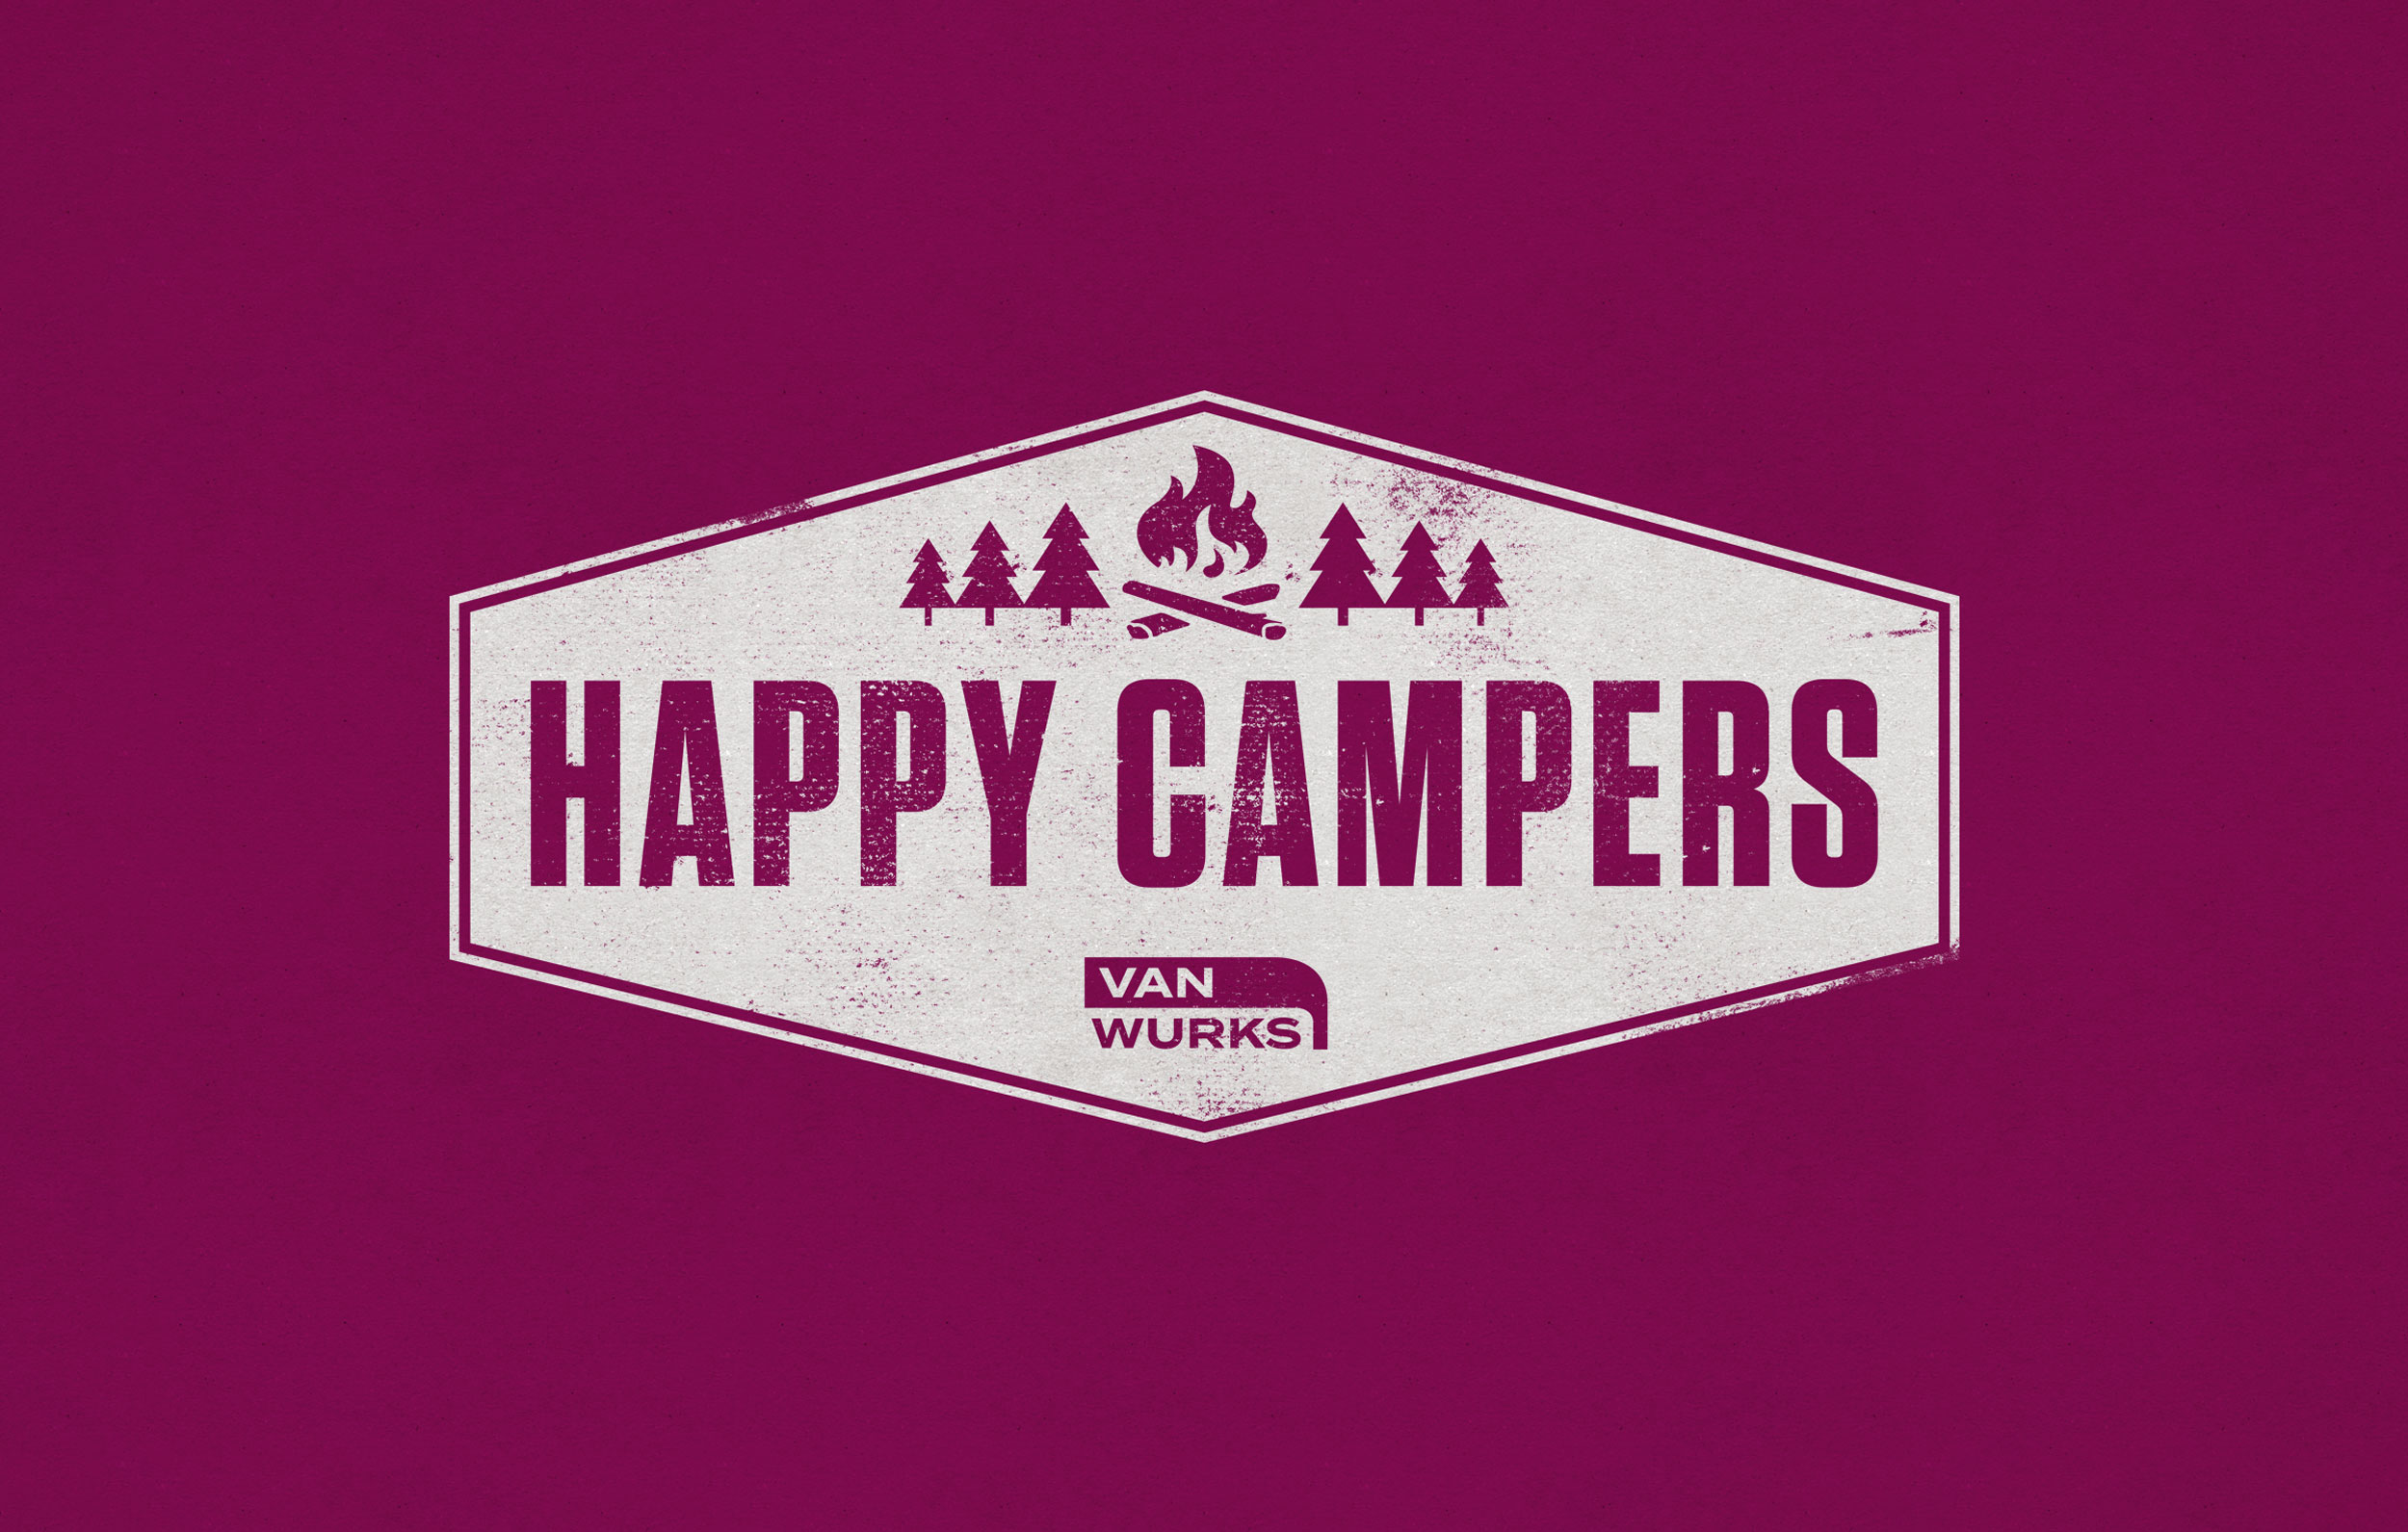 Van-Wurks-Identity-Design-by-Ian-Whalley-happy-camper.jpg